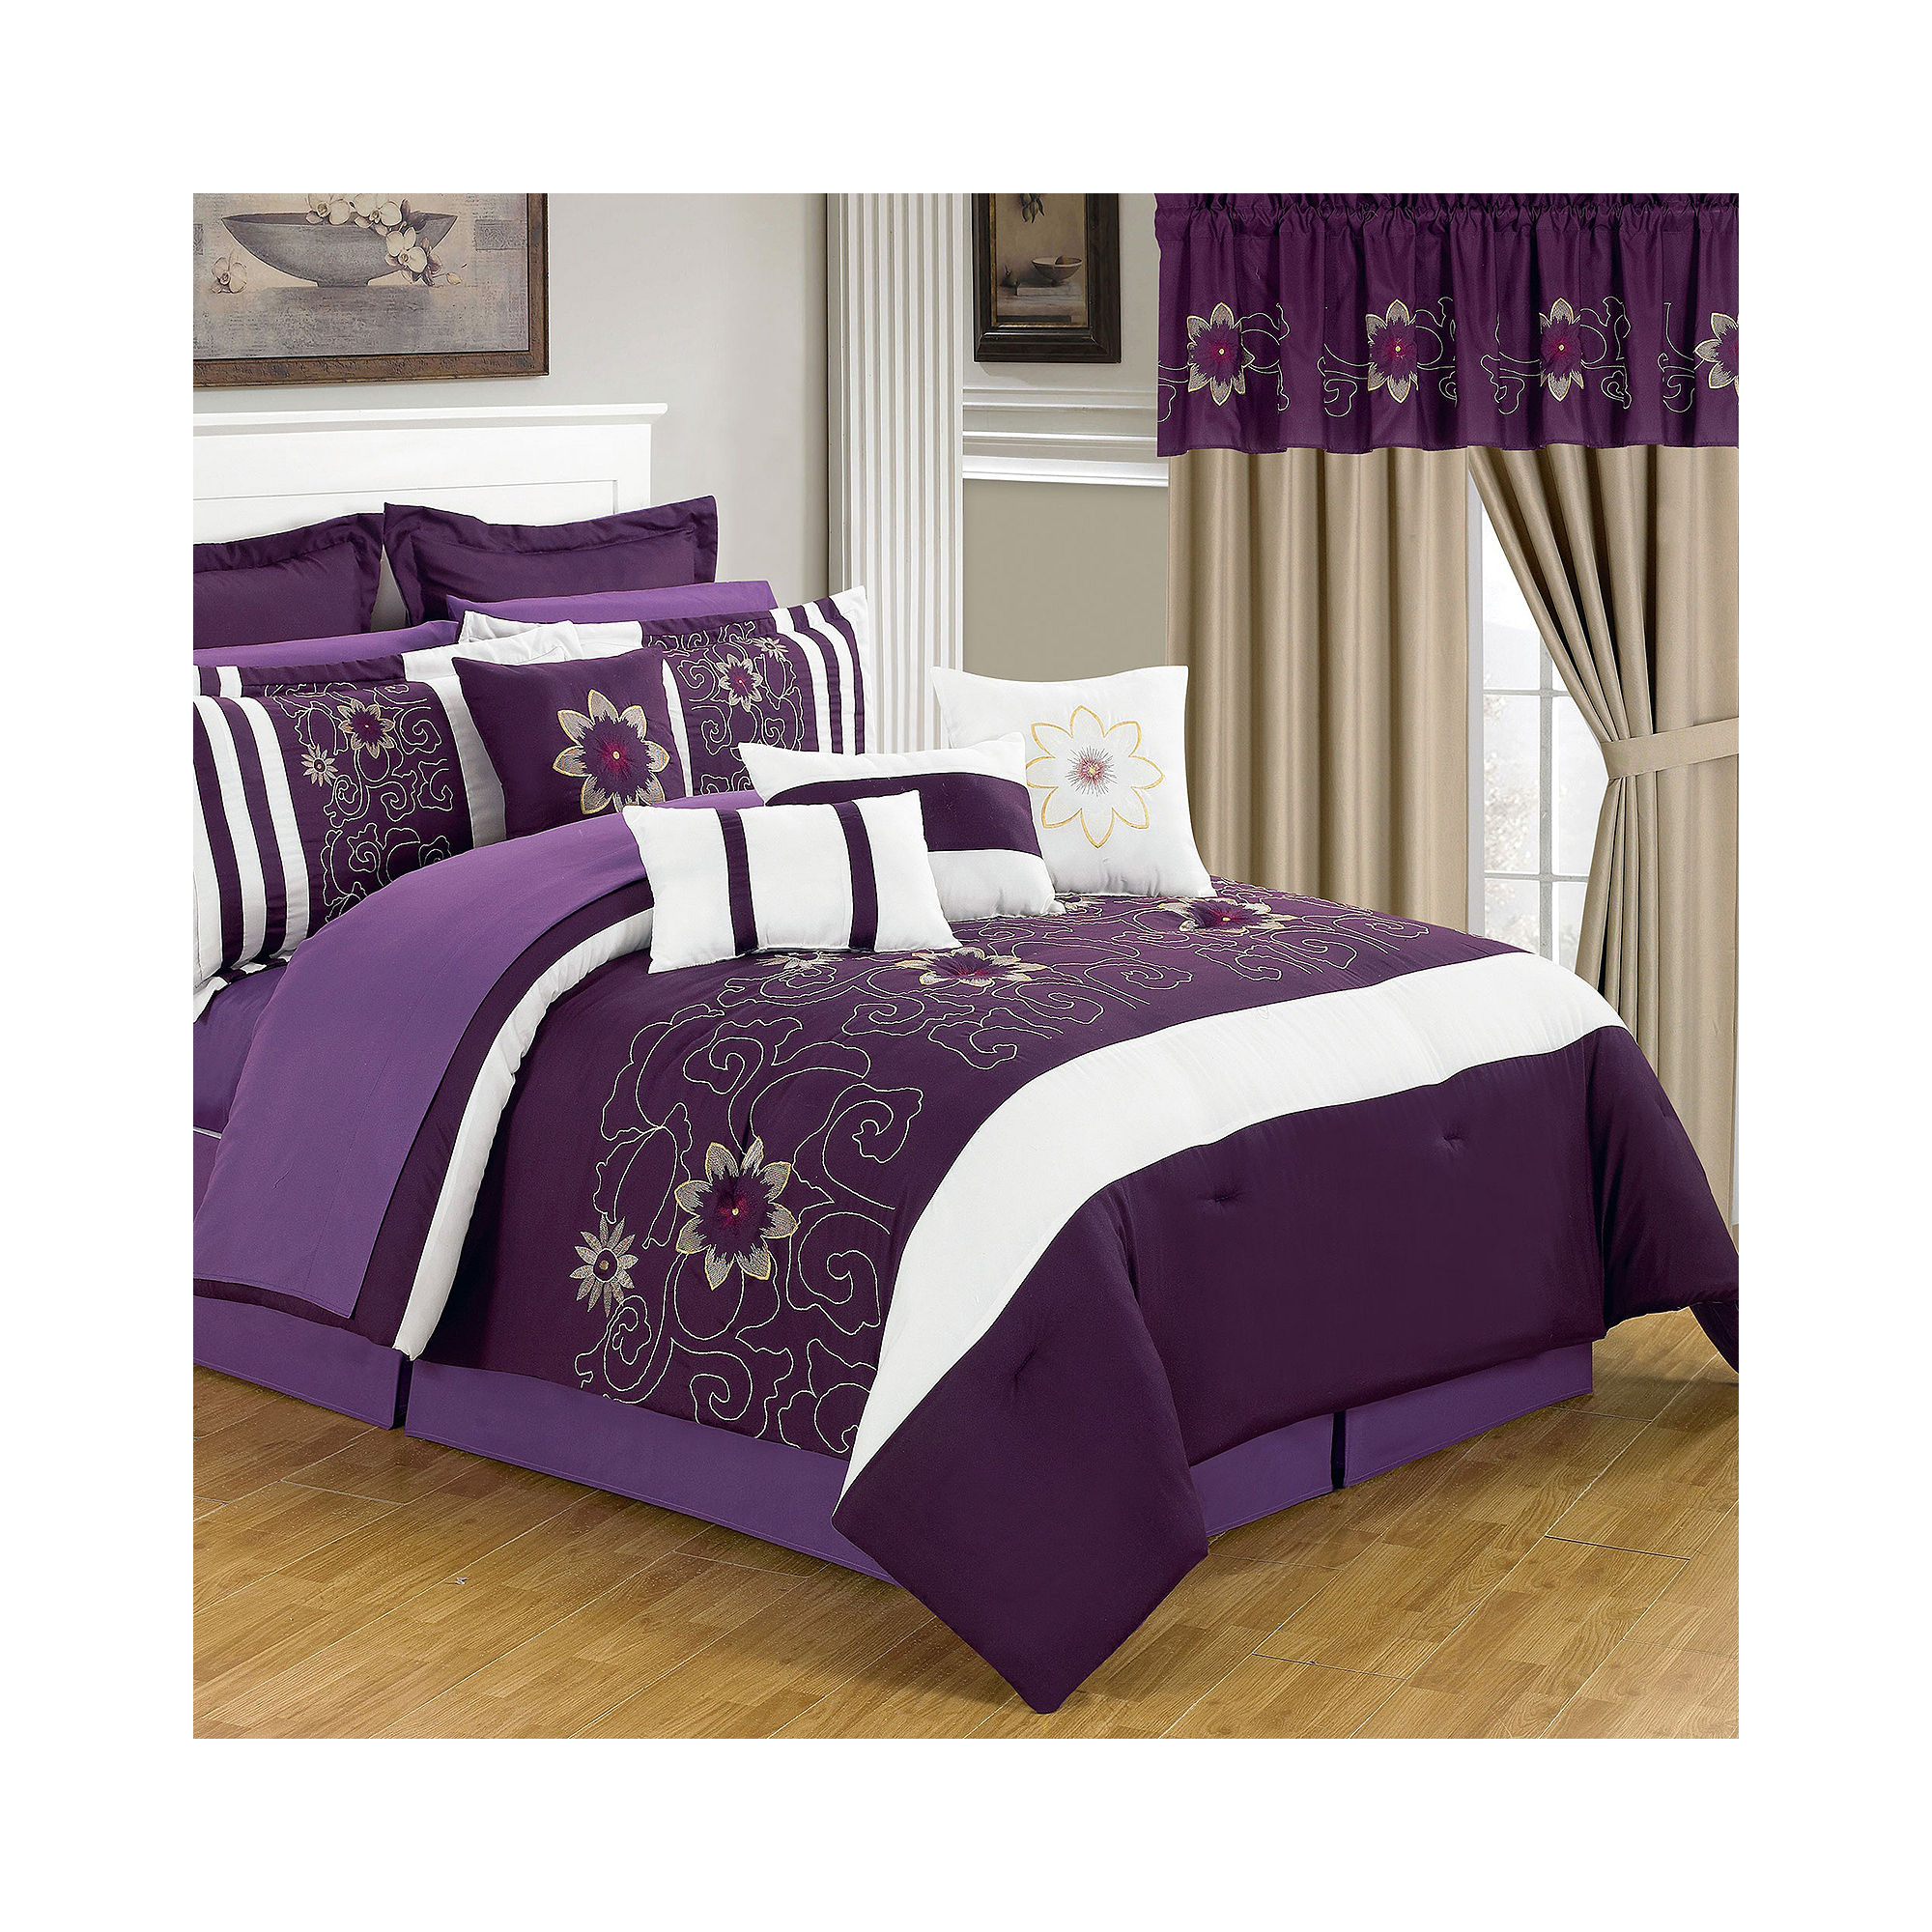 Complete Bedroom Bedding Sets With Curtains Bedroom Sets Including Curtains Black Cream